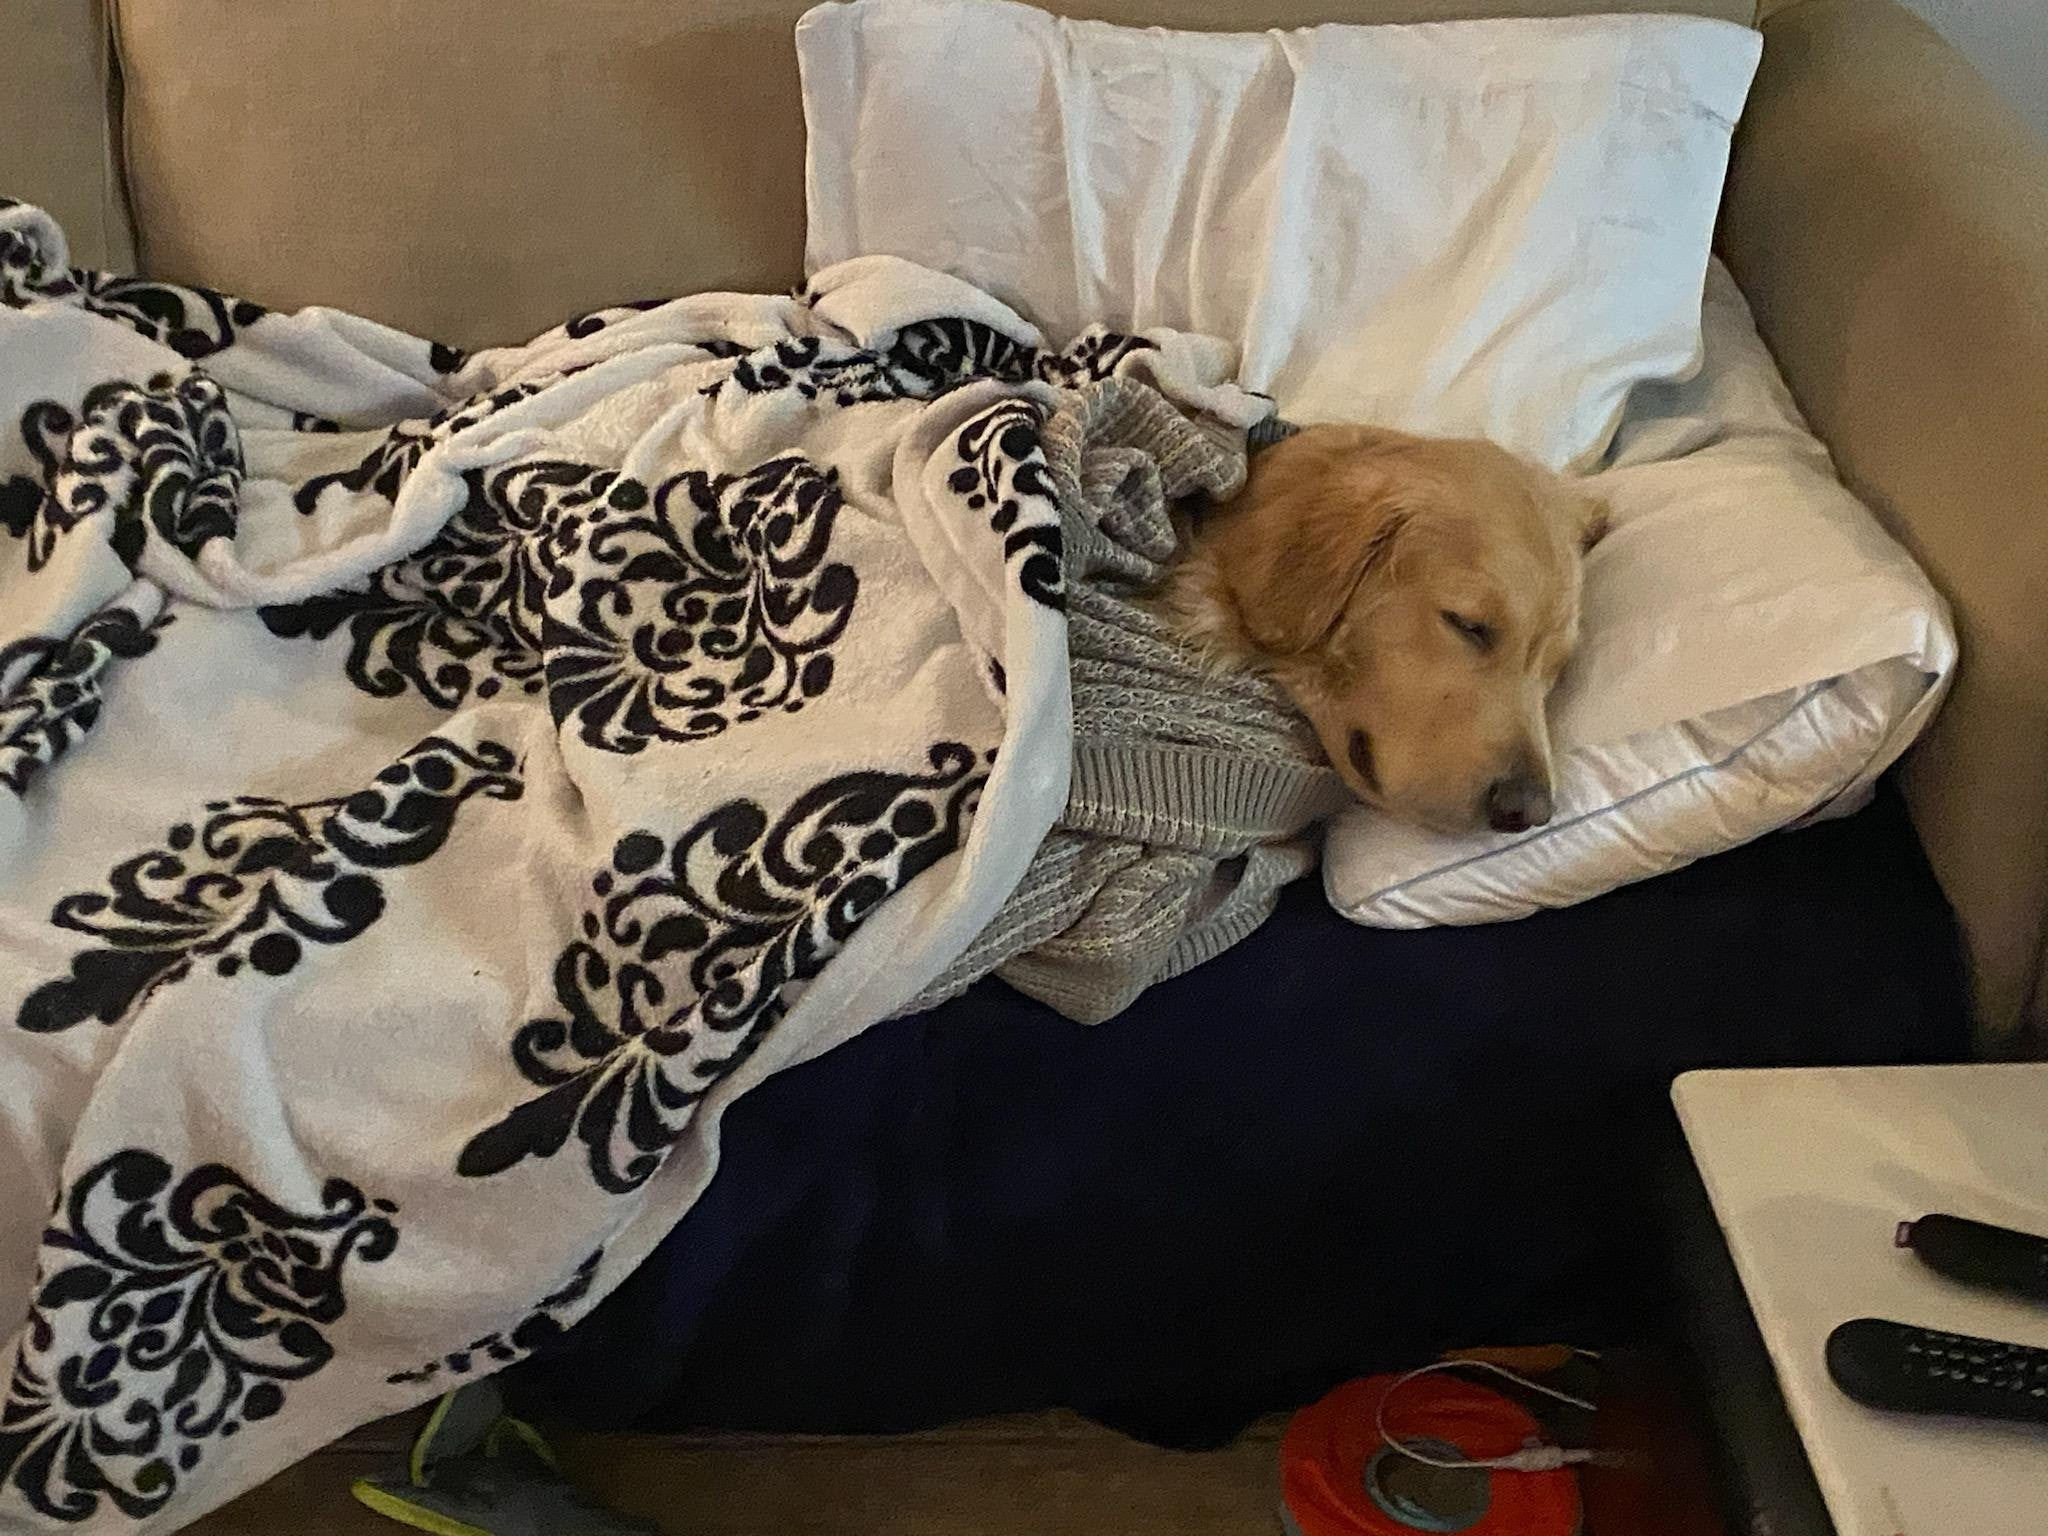 dog sleeping on couch wrapped up in blankets